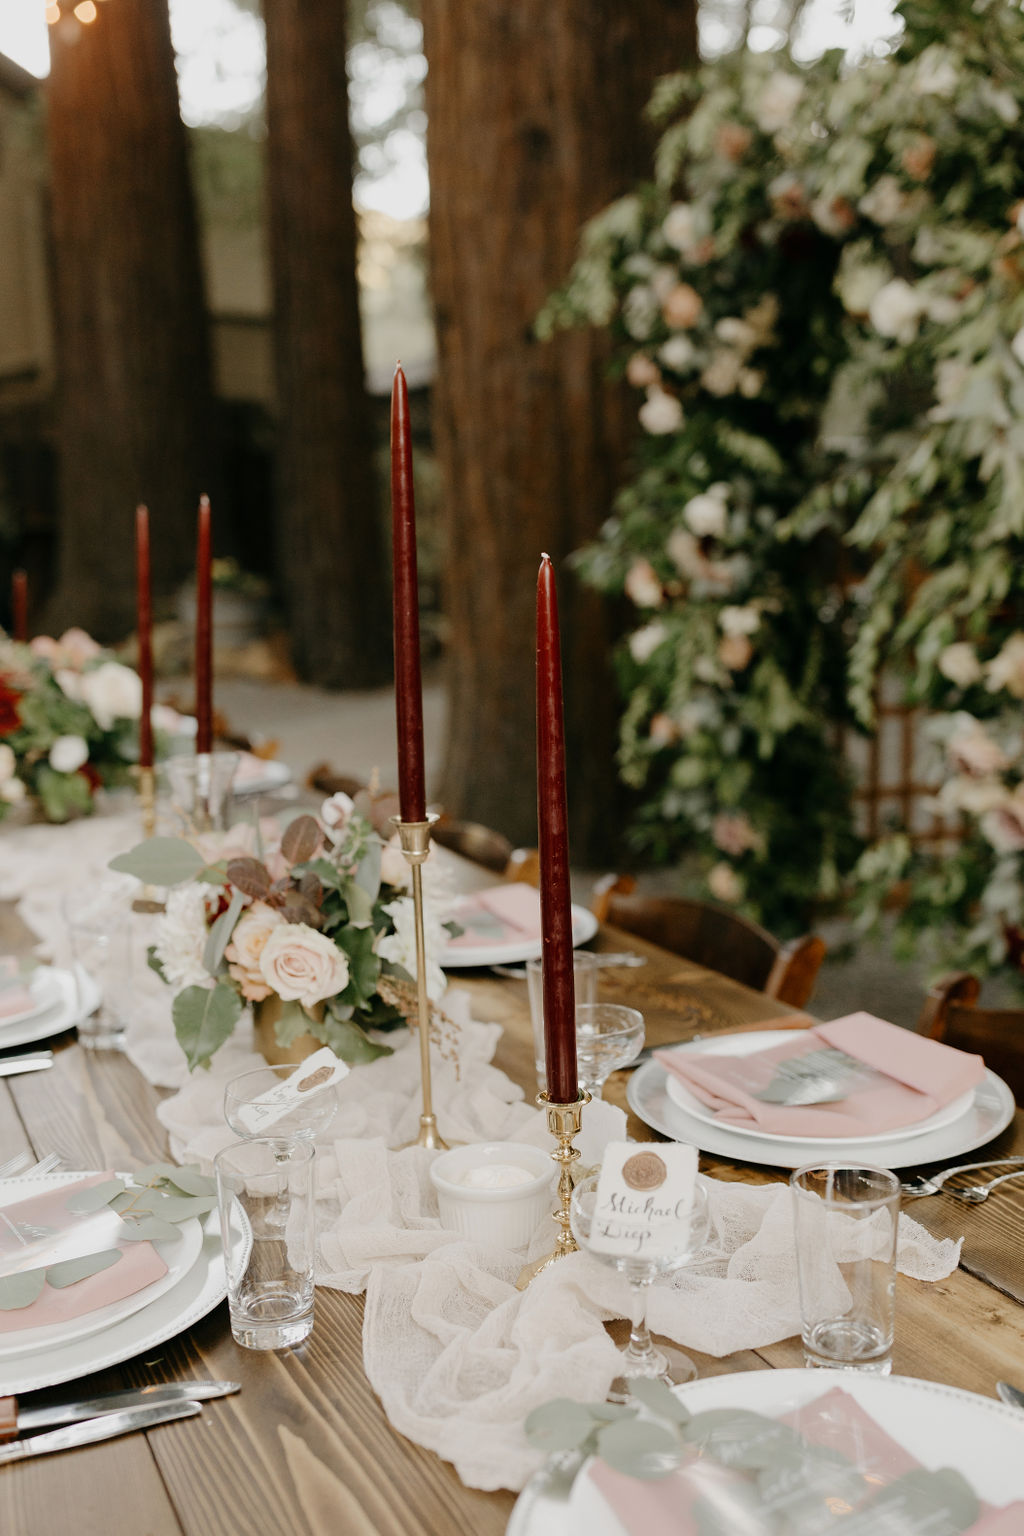 Deer Park Villa Wedding Planner Perfectly Planned Moments Nirav Patel Photography Bellevue Floral Co Farm Table Arrangements.JPG